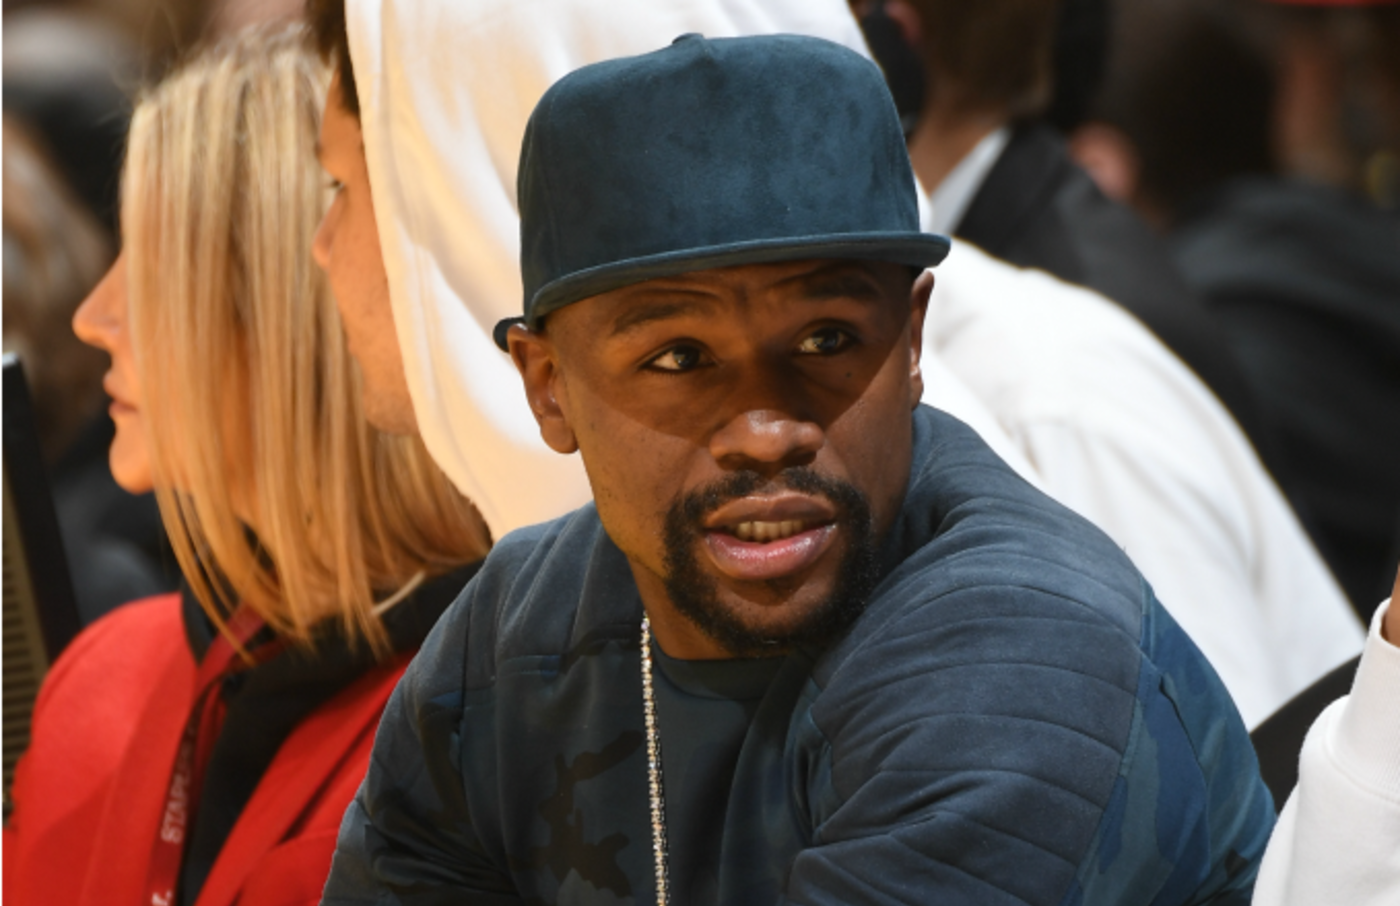 Professional boxer Floyd Mayweather attends a game